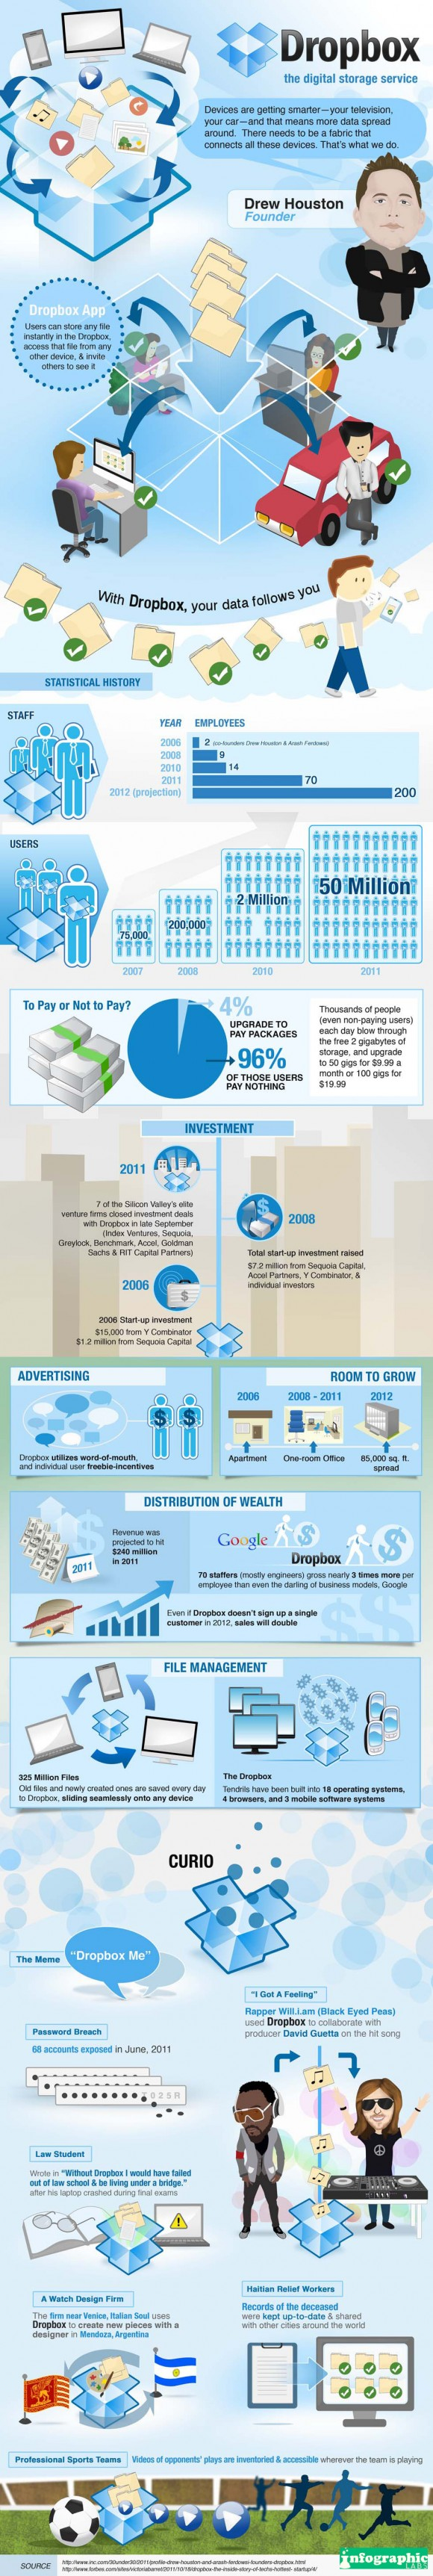 Dropbox: Rising Leaders In Cloud Storage [Infographic]